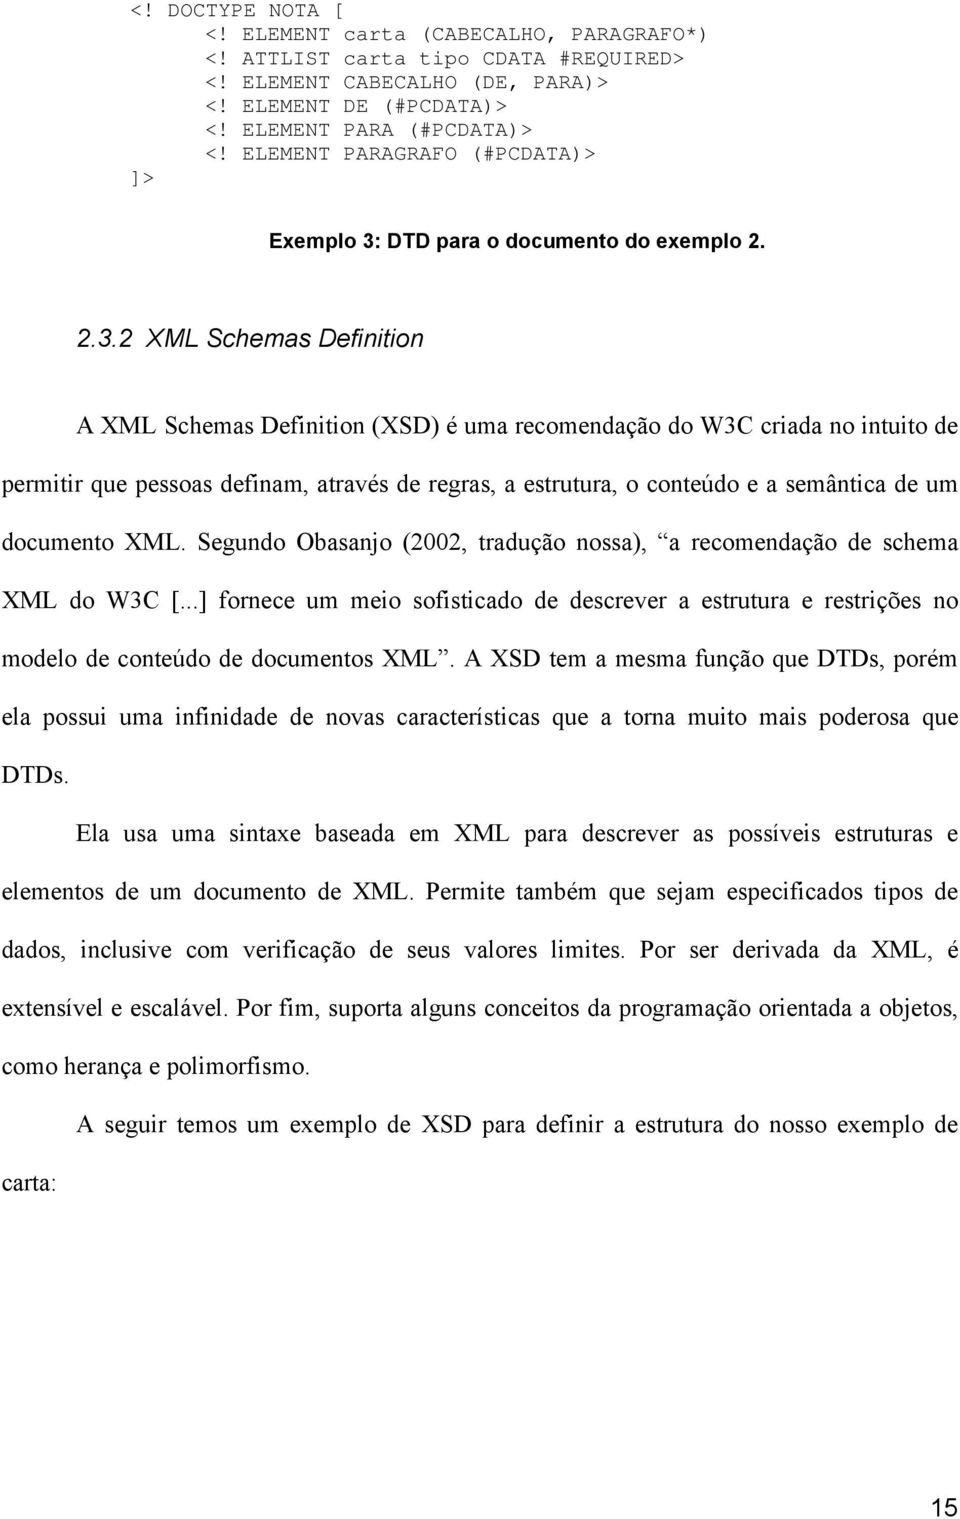 DTD para o documento do exemplo 2. 2.3.